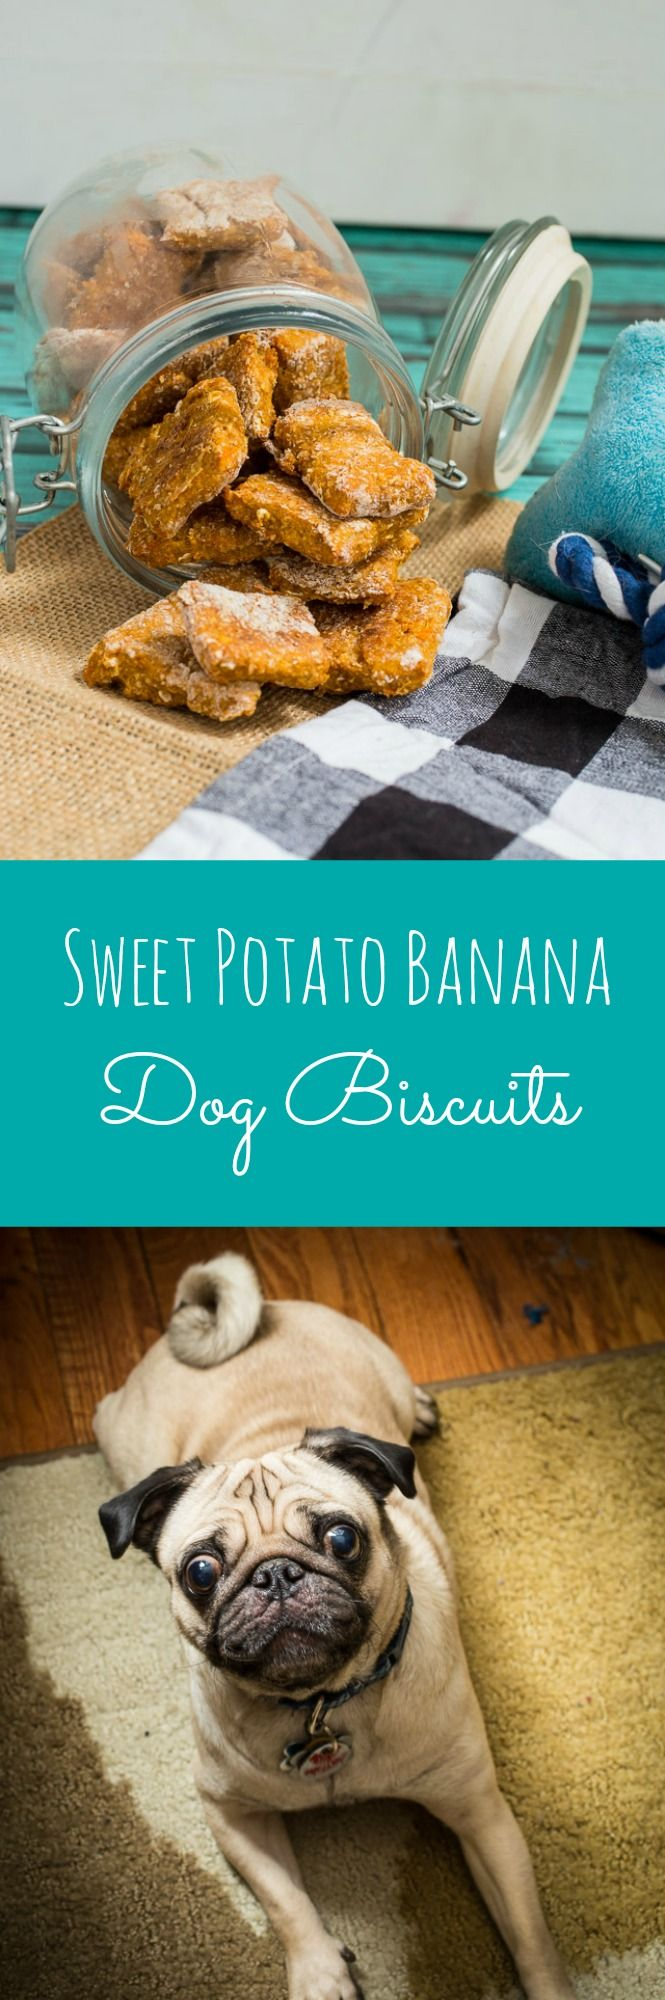 Best 1937 Doggie Recipes images on Pinterest | Cooking food, Cute ...